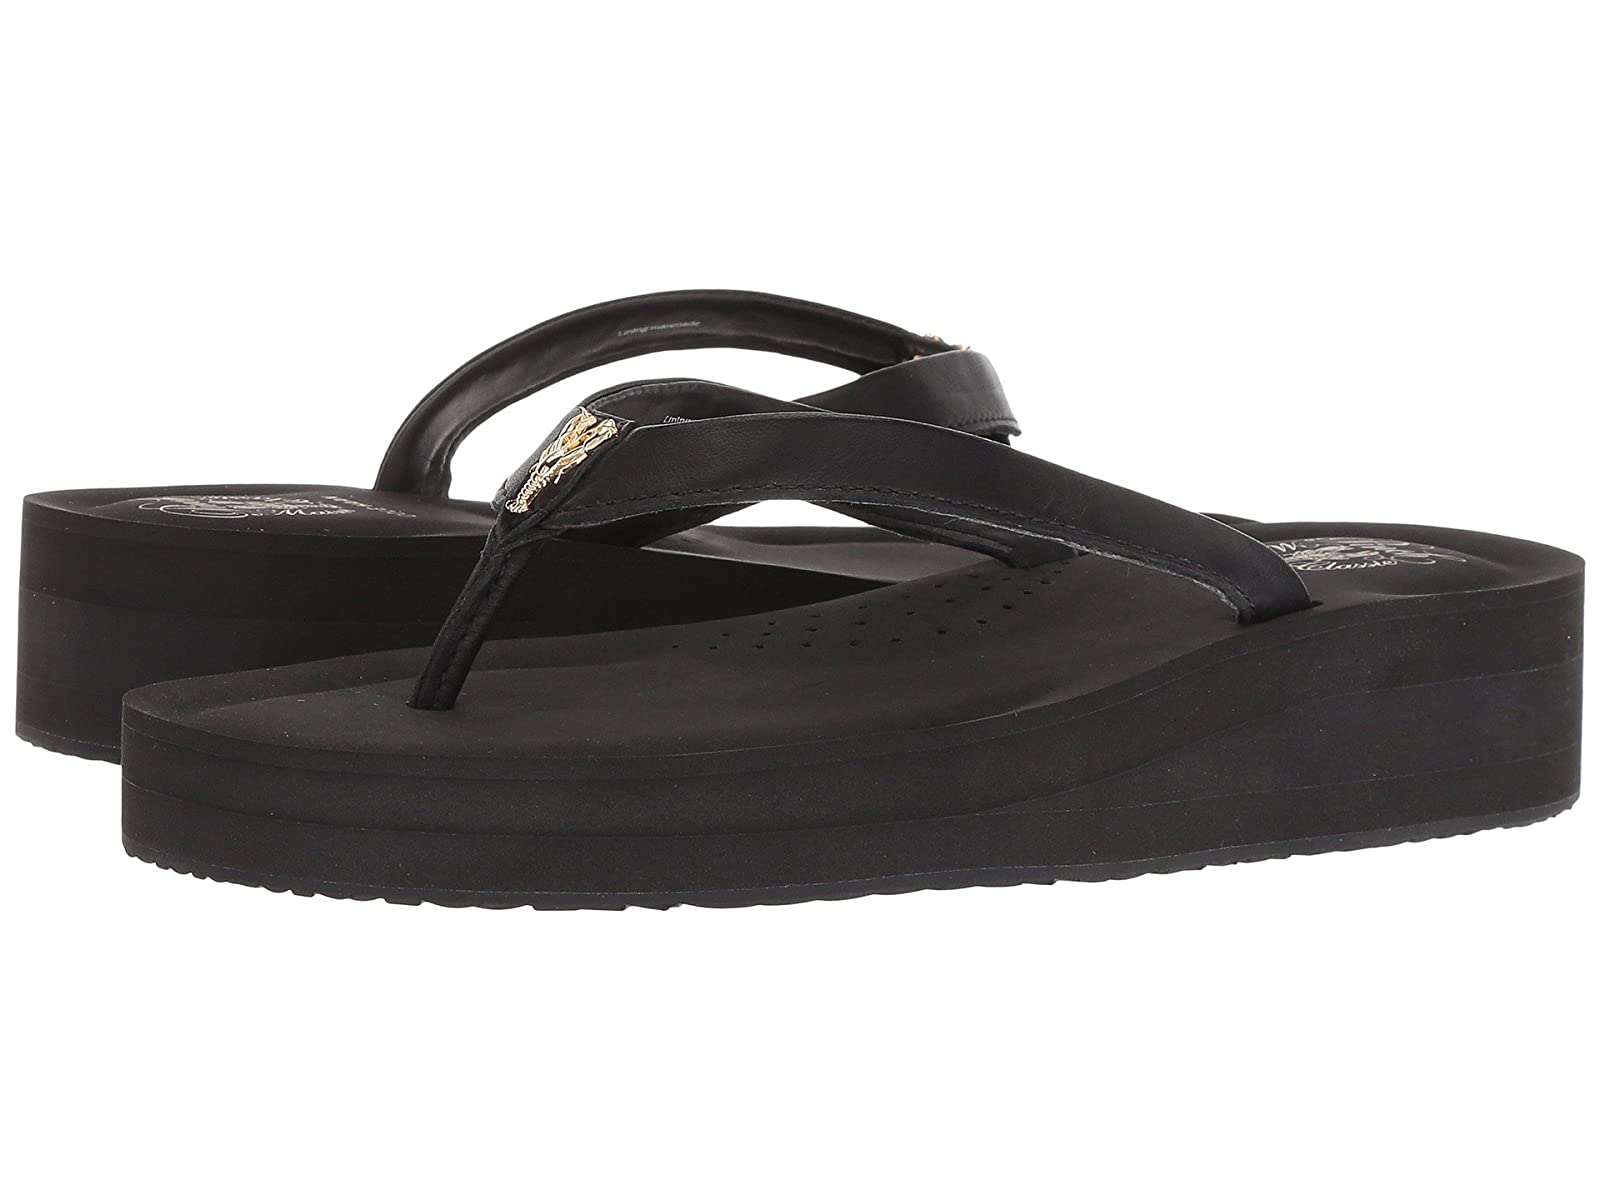 Cole Haan Pinch Lobster Flip-FlopComfortable and distinctive shoes